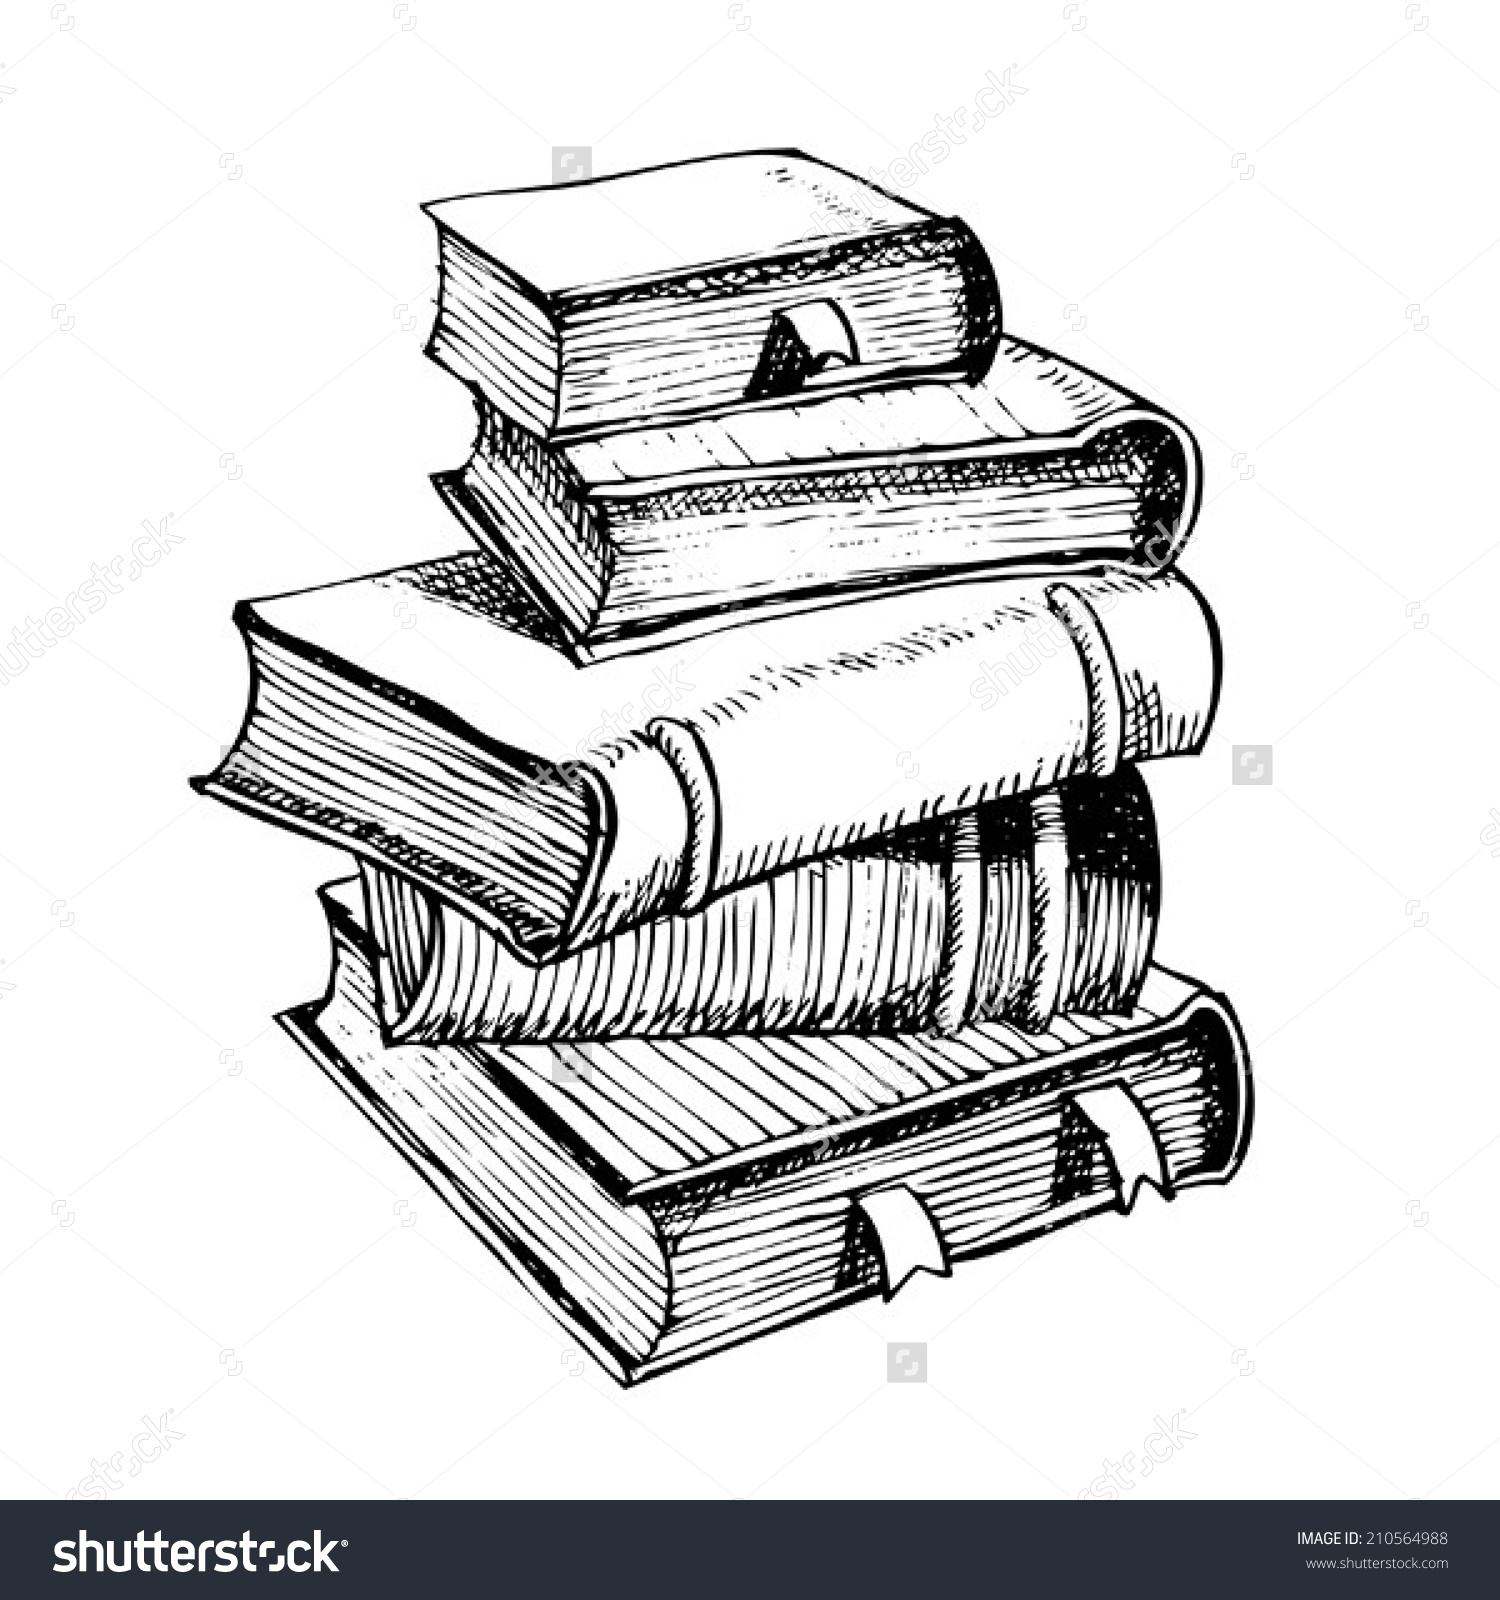 collection of vintage. Books clipart sketch